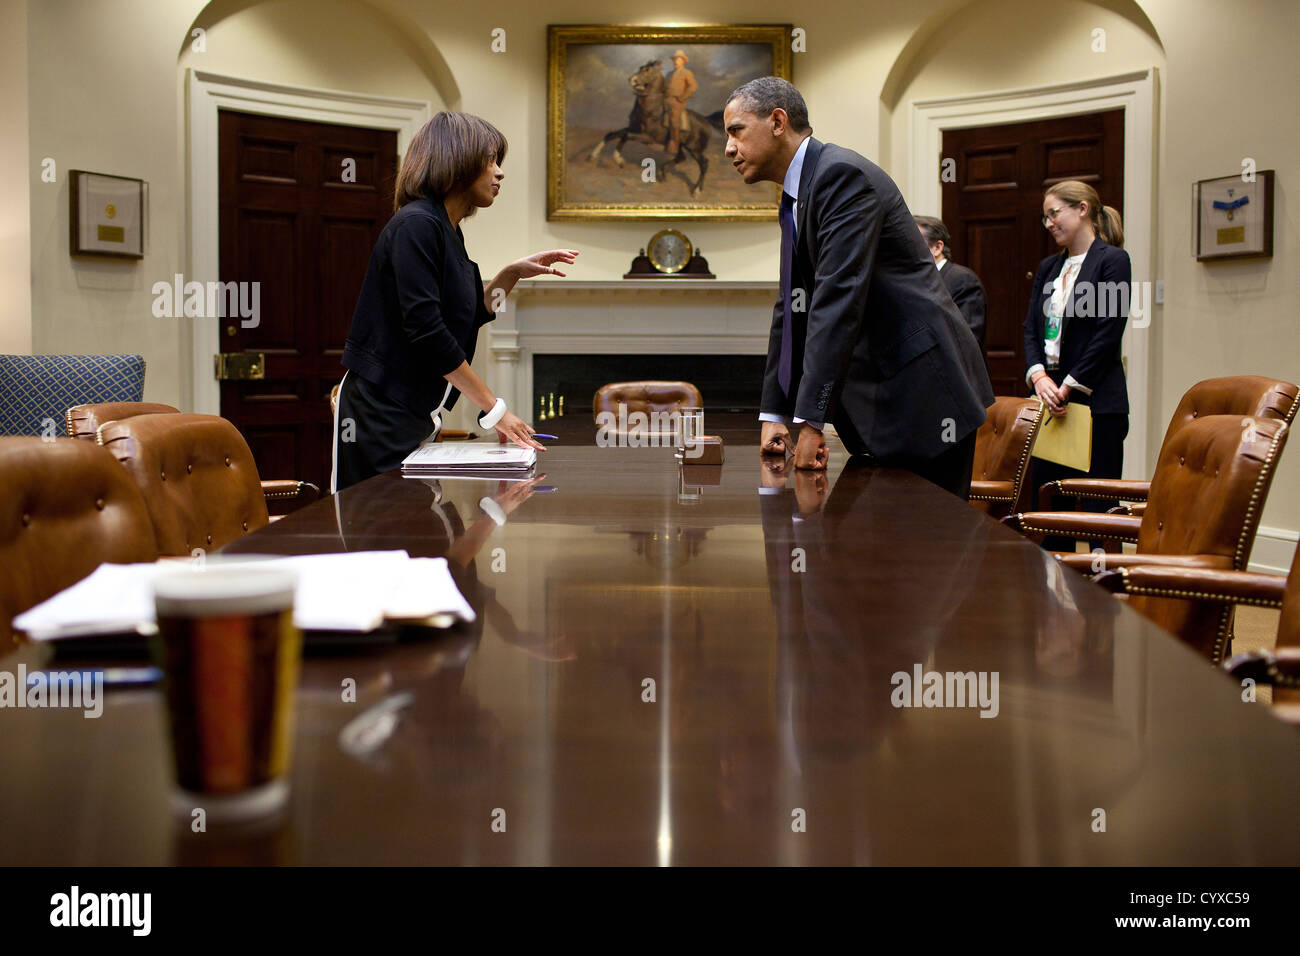 US President Barack Obama talks with Melody Barnes, Domestic Policy Council Director following a meeting on immigration - Stock Image